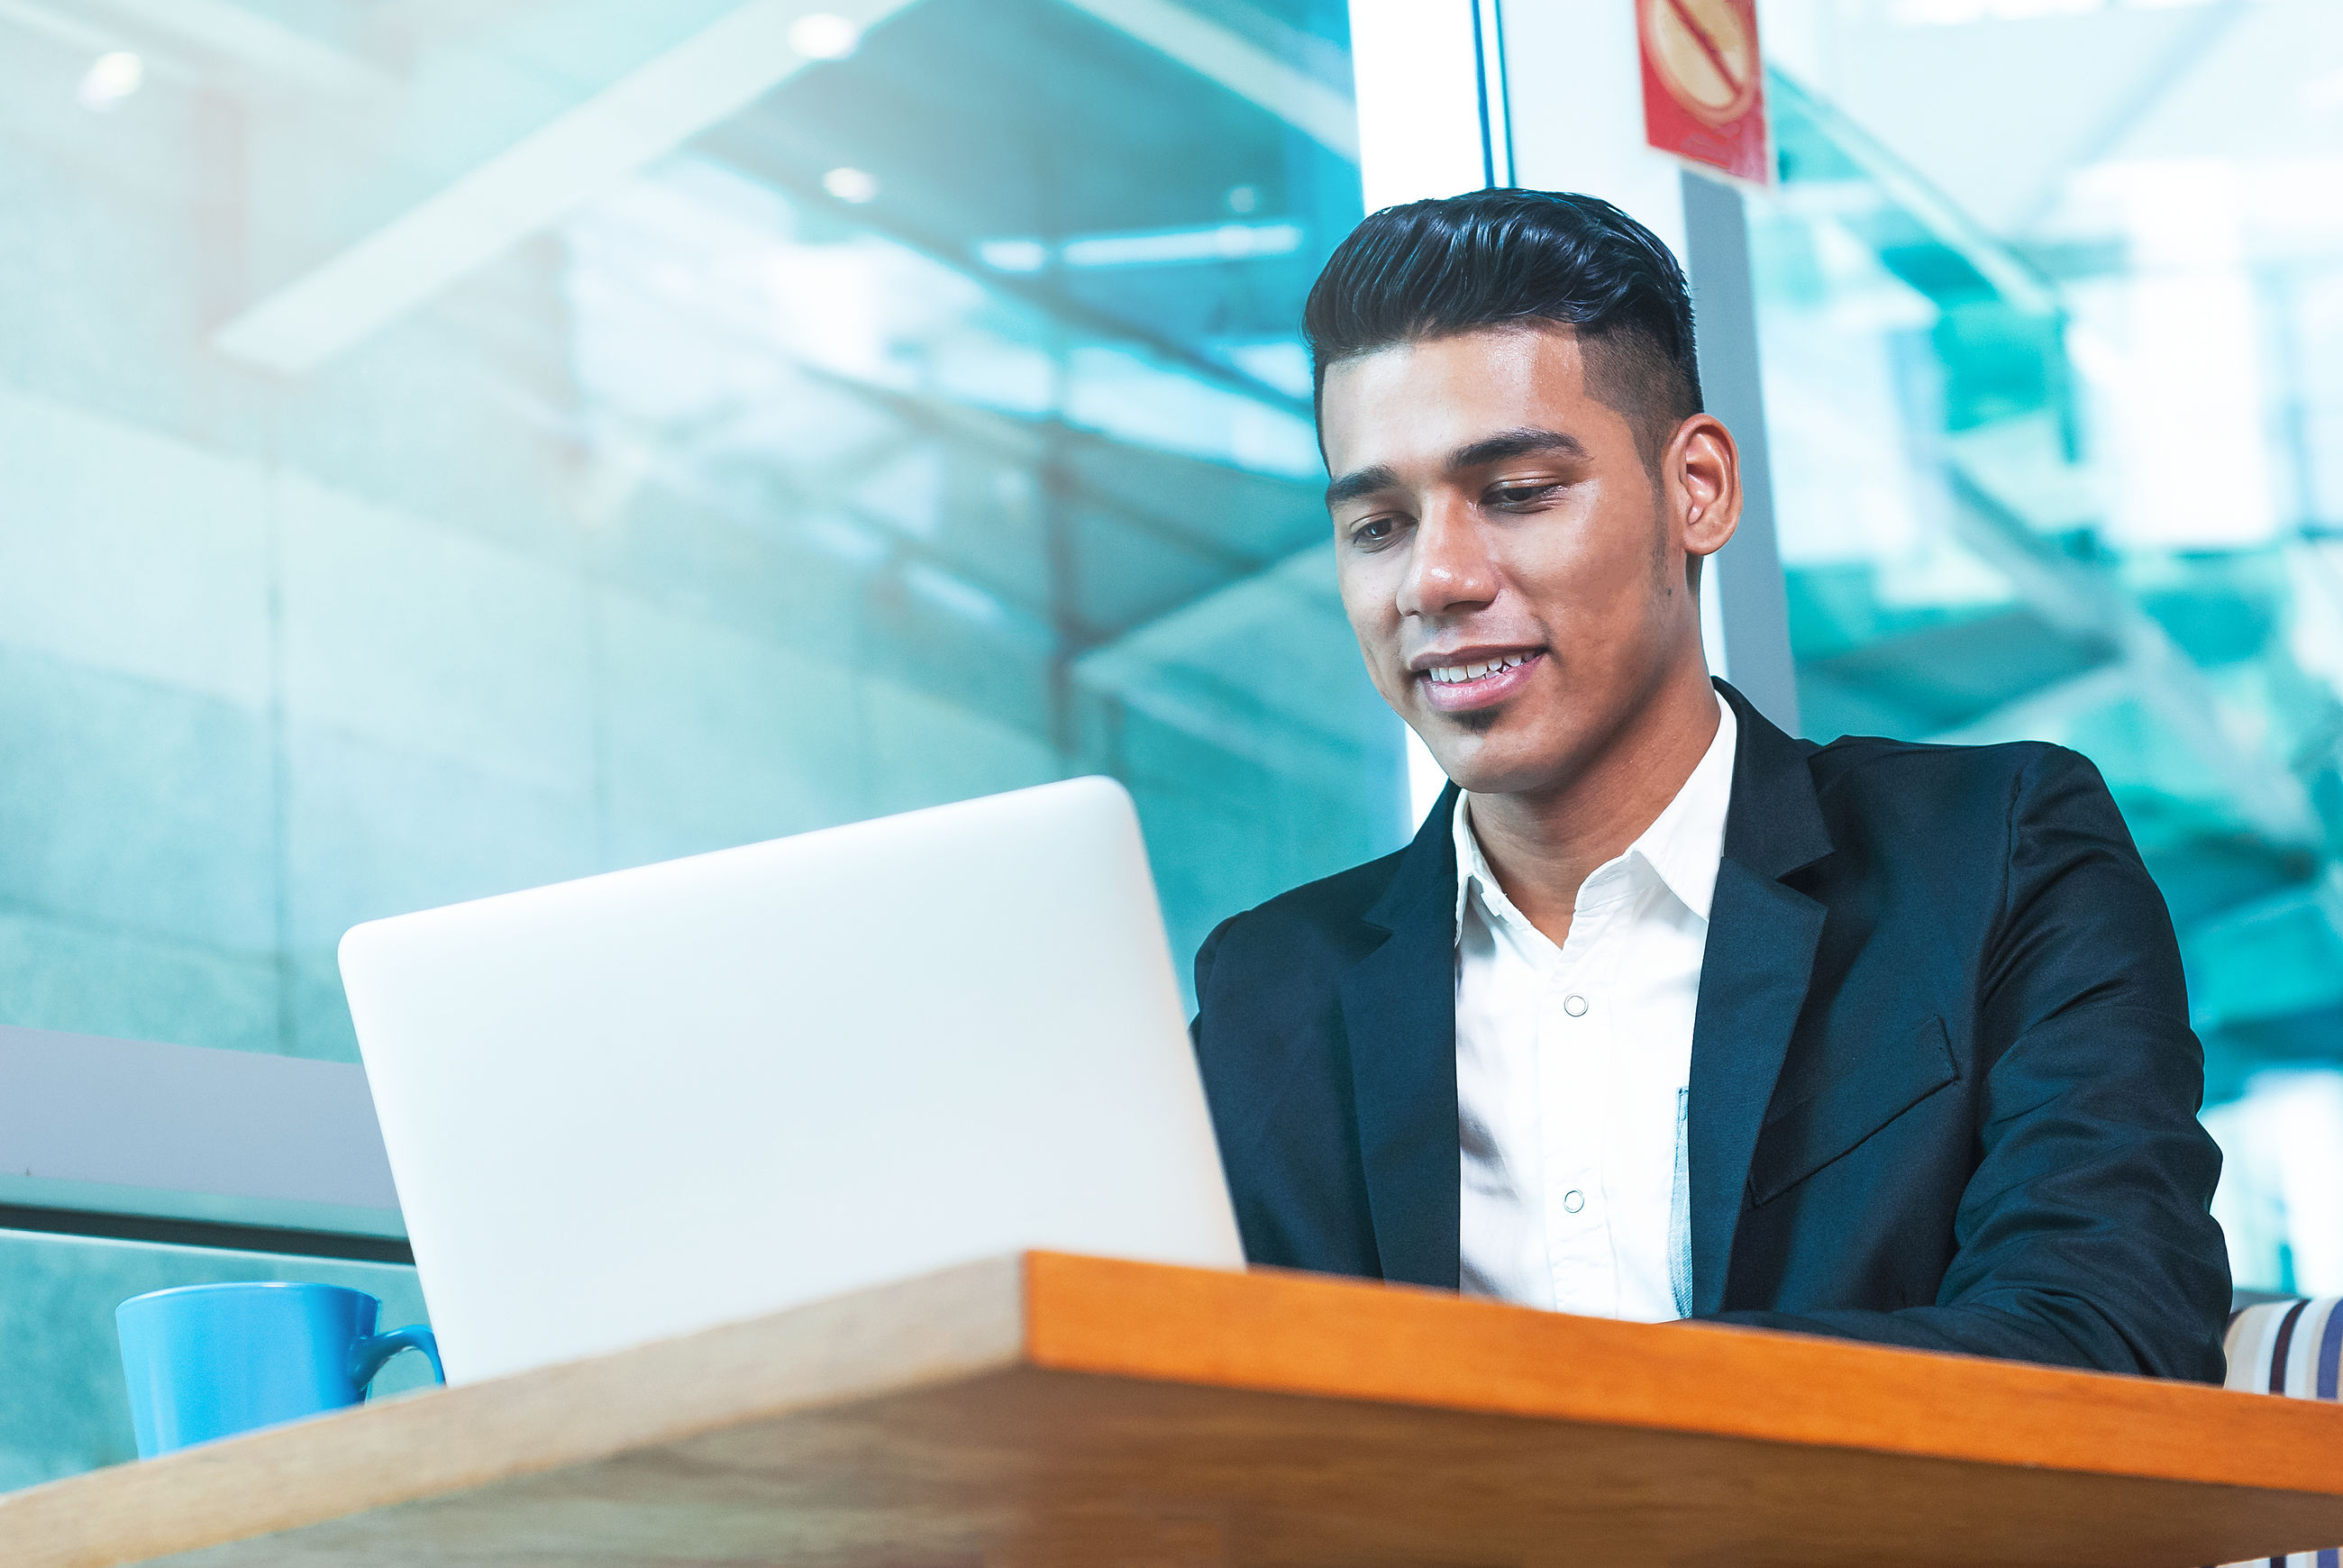 Businessman using laptop on table